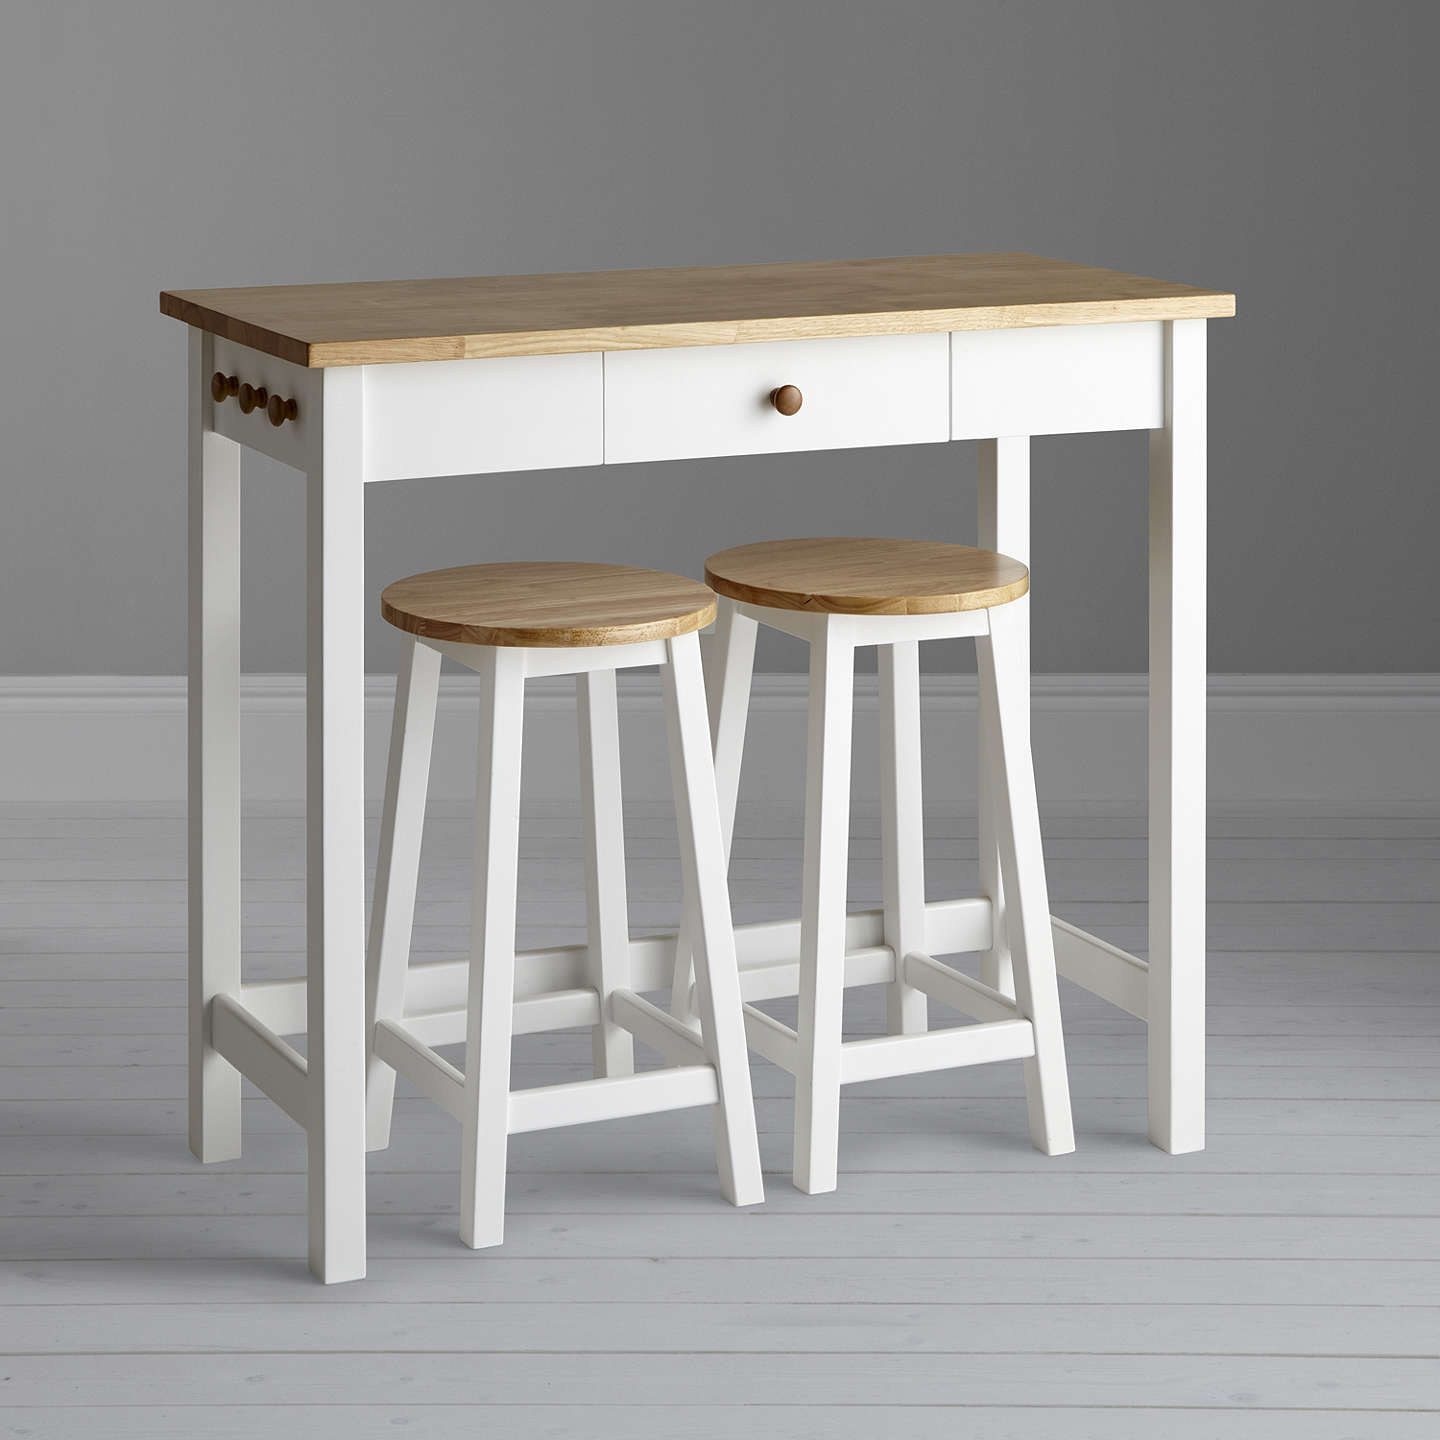 John Lewis Adler Bar Table Amp Stools White Oak At John Lewis